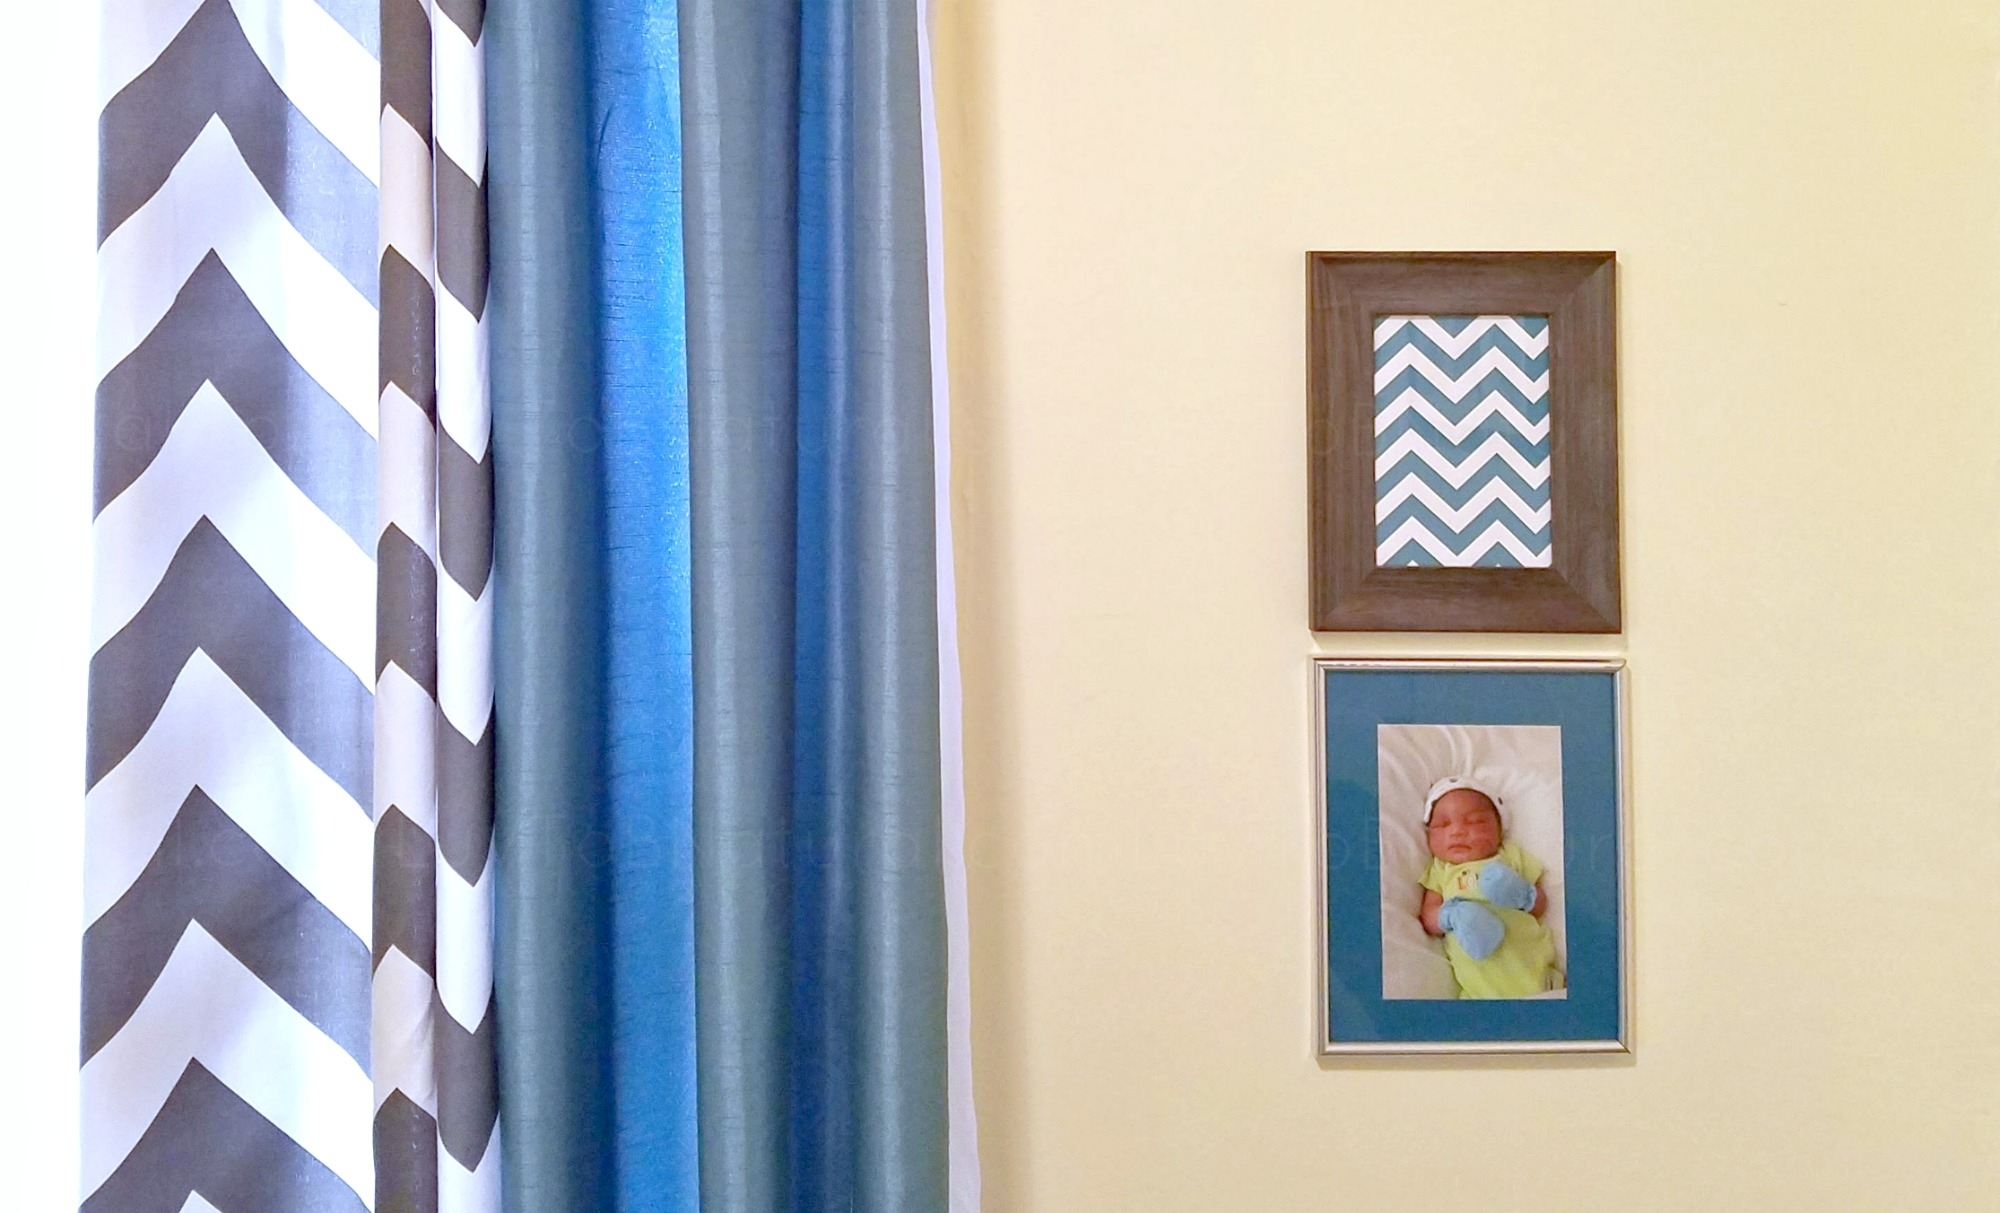 How To Diy Chevron Wall Art For Any Room! – Tobnatural Regarding Recent Chevron Wall Art (View 16 of 20)